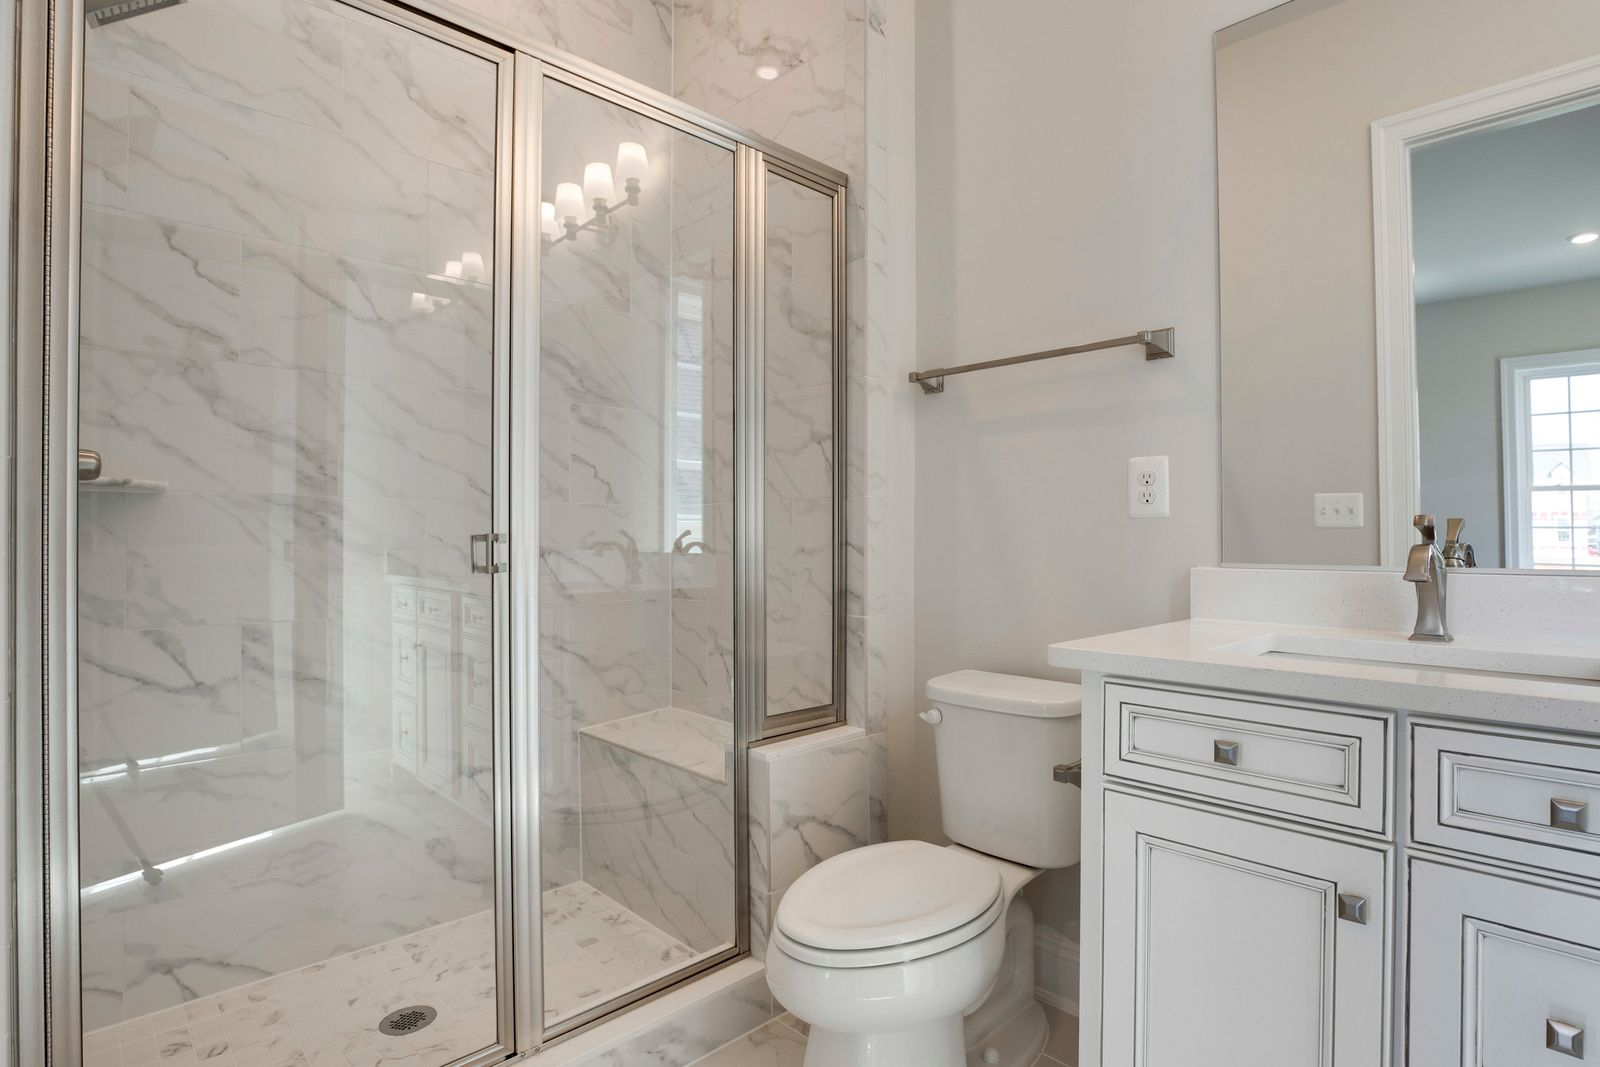 Bathroom featured in the Monticello II By NVHomes in Washington, VA